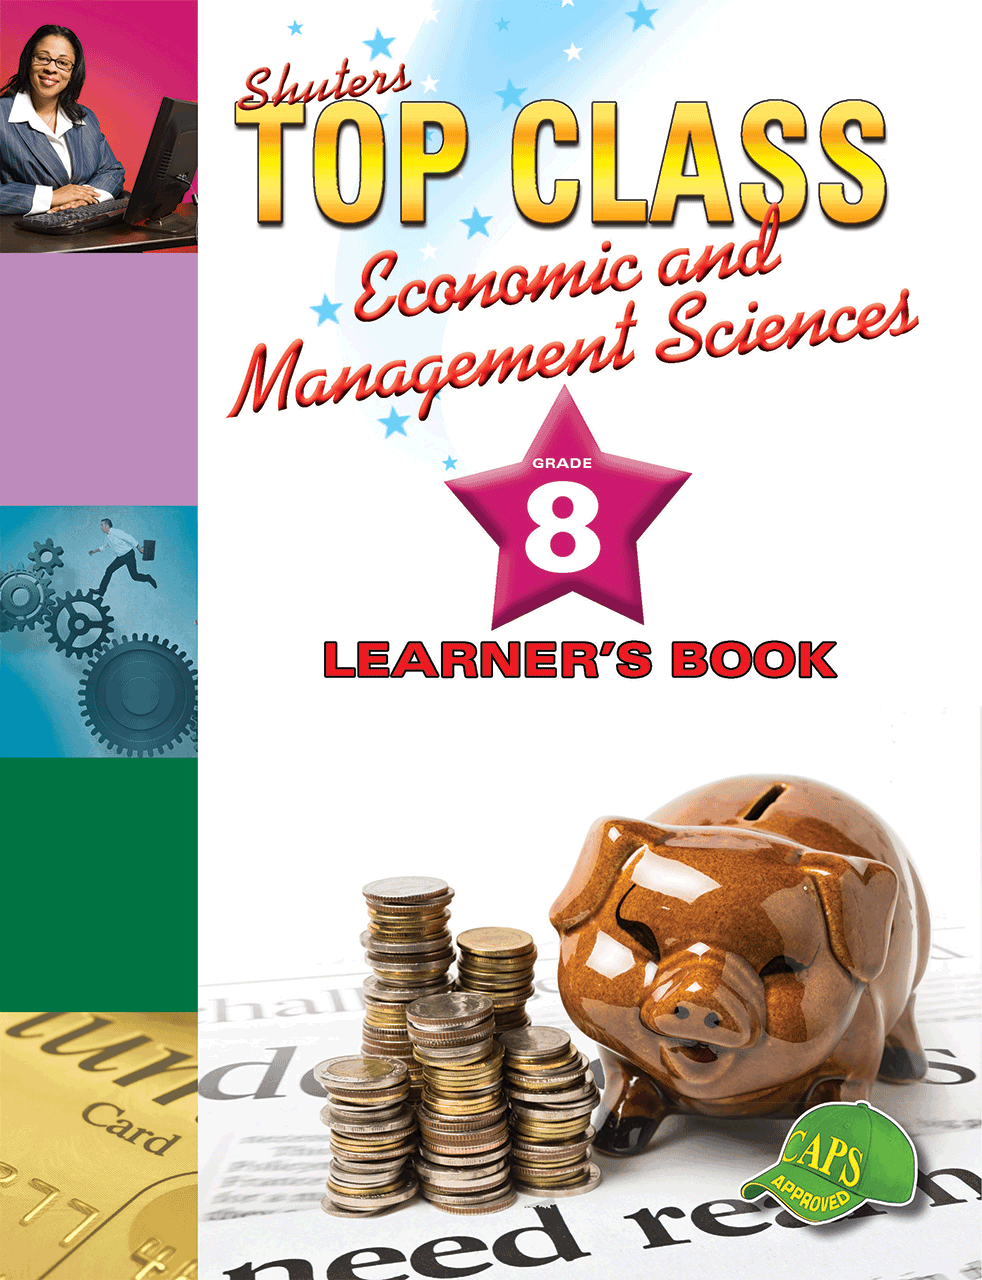 hight resolution of TOP CLASS EMS GRADE 8 LEARNER'S BOOK   WCED ePortal